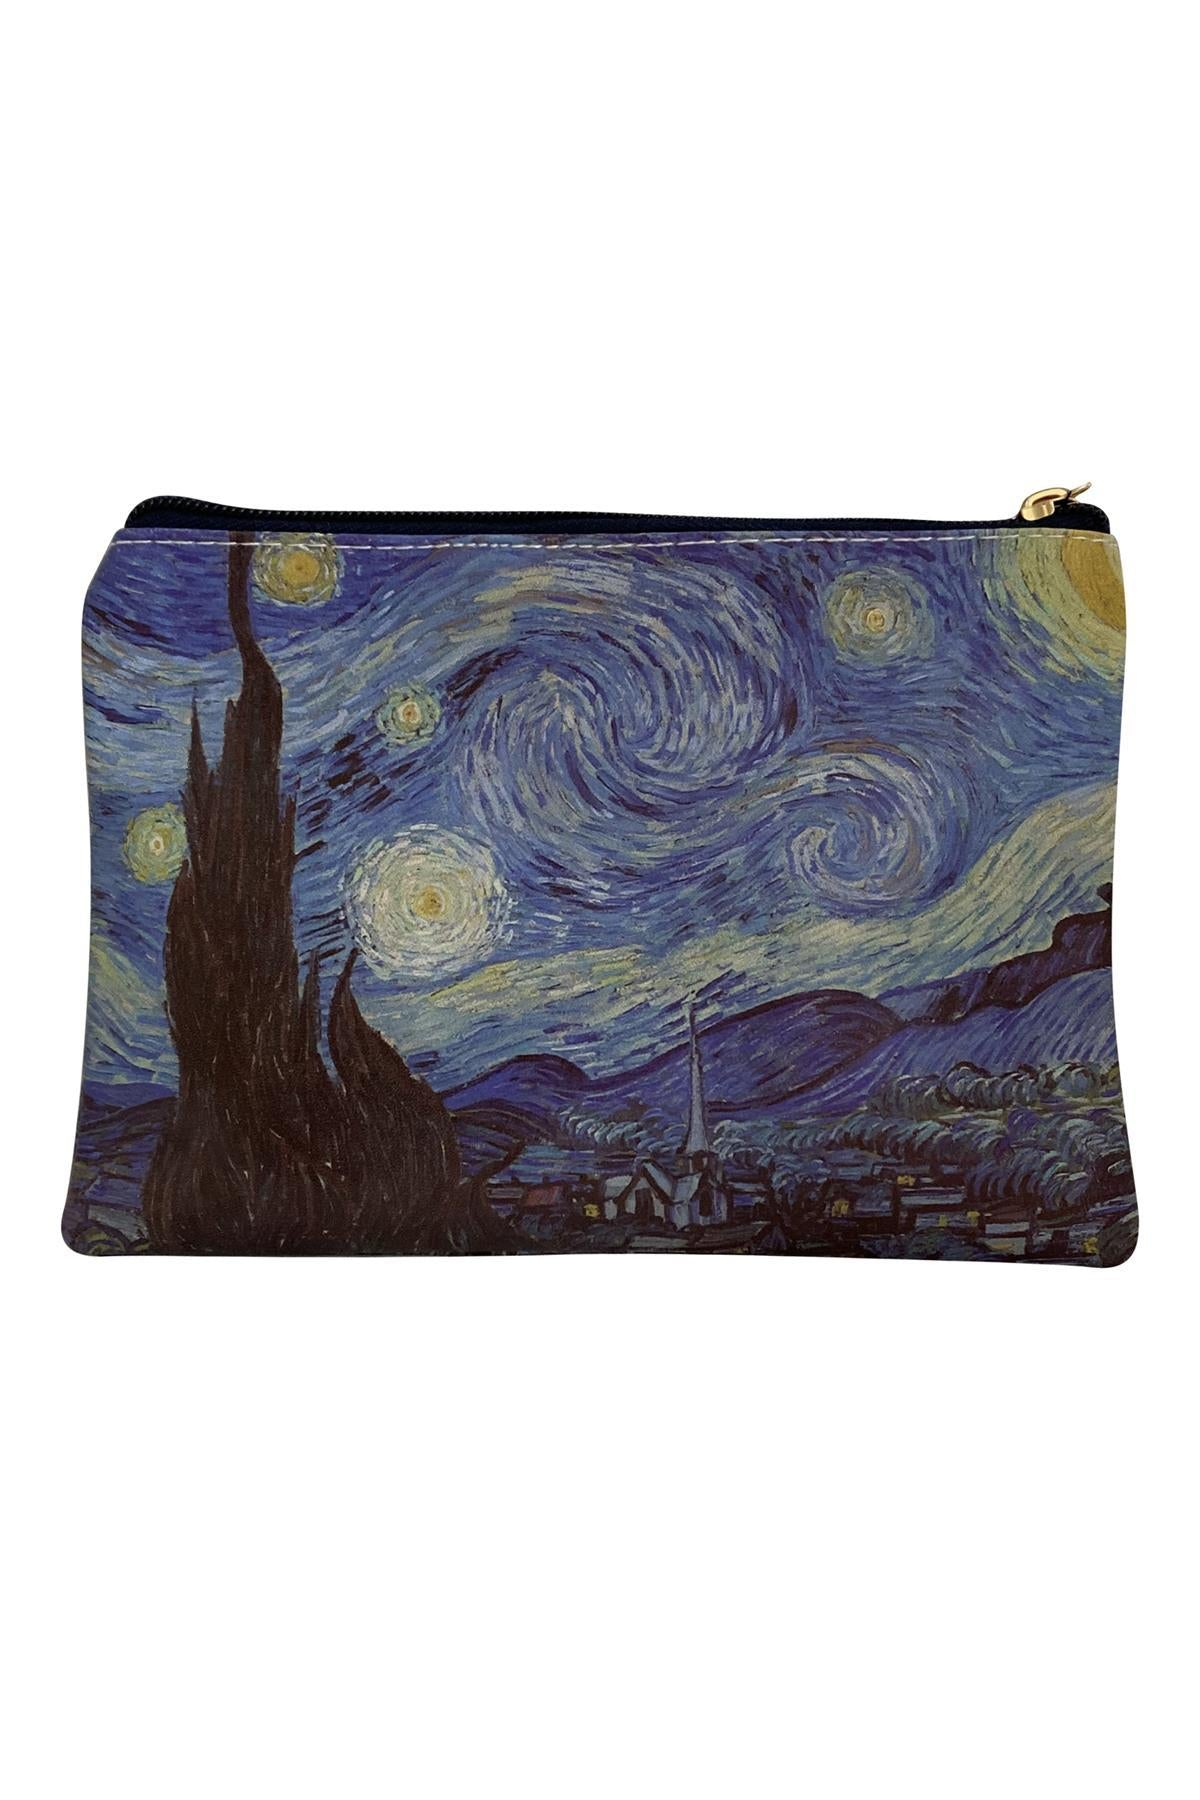 Van Gogh Starry Night Print - Mini Clutch Bag